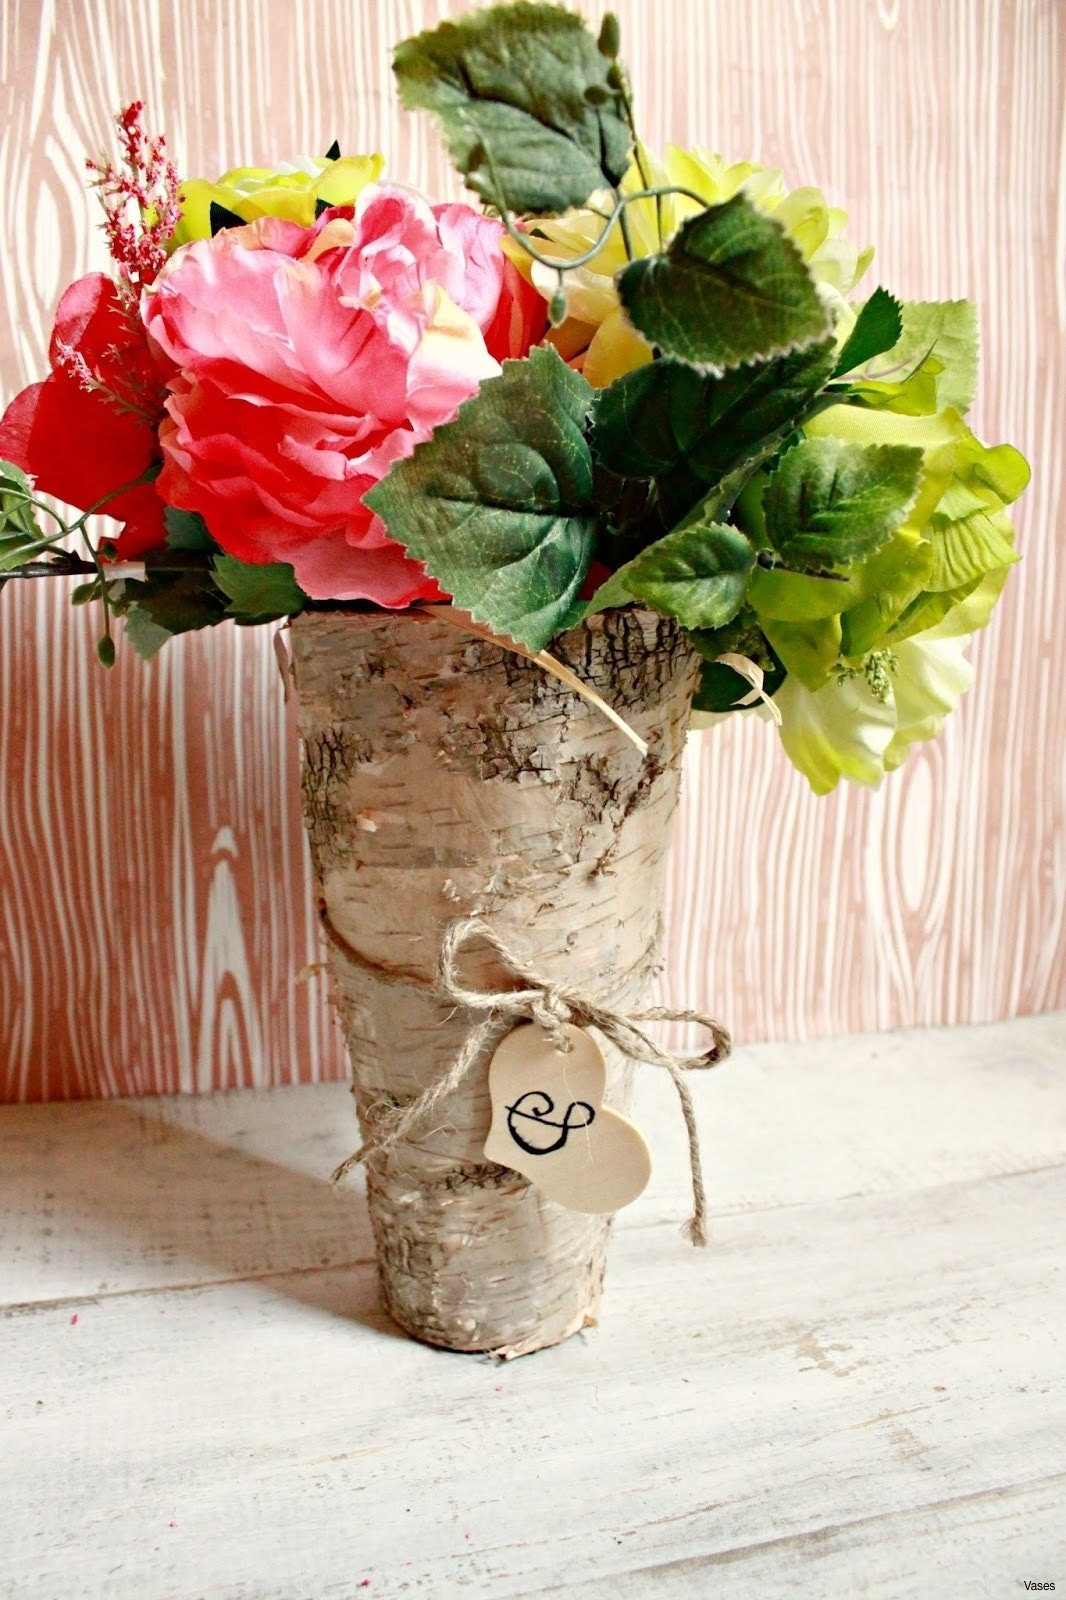 trumpet pilsner vase wholesale of great vases for weddings photos fun centerpiece vases 6 in decors inside comely wooden flower boxes flower vases weddings flower design vase